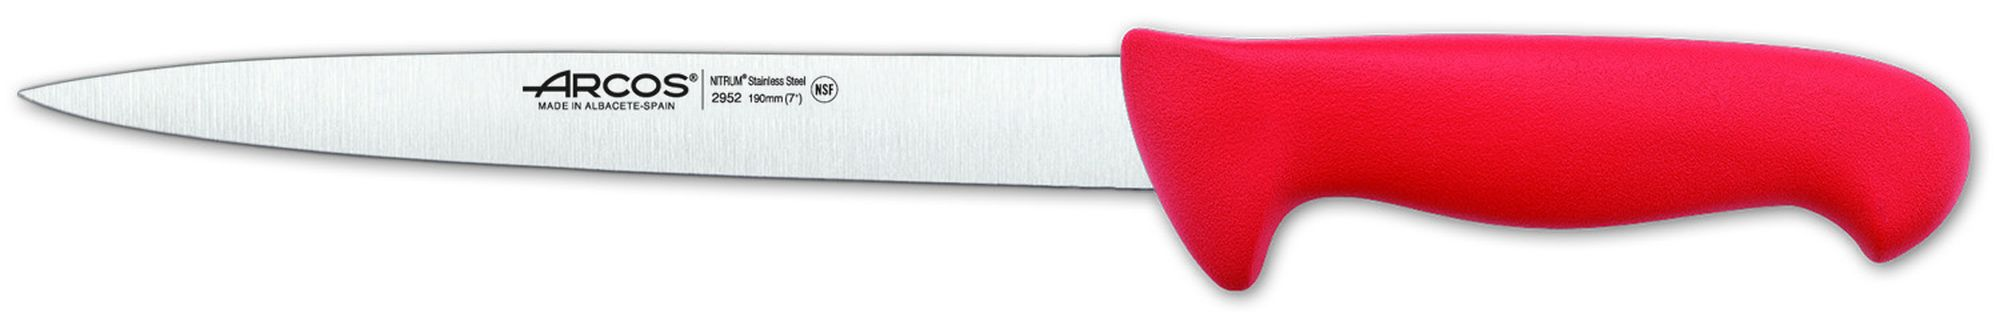 Cuchillo Fileteador Semiflexible Arcos ref.: 295222